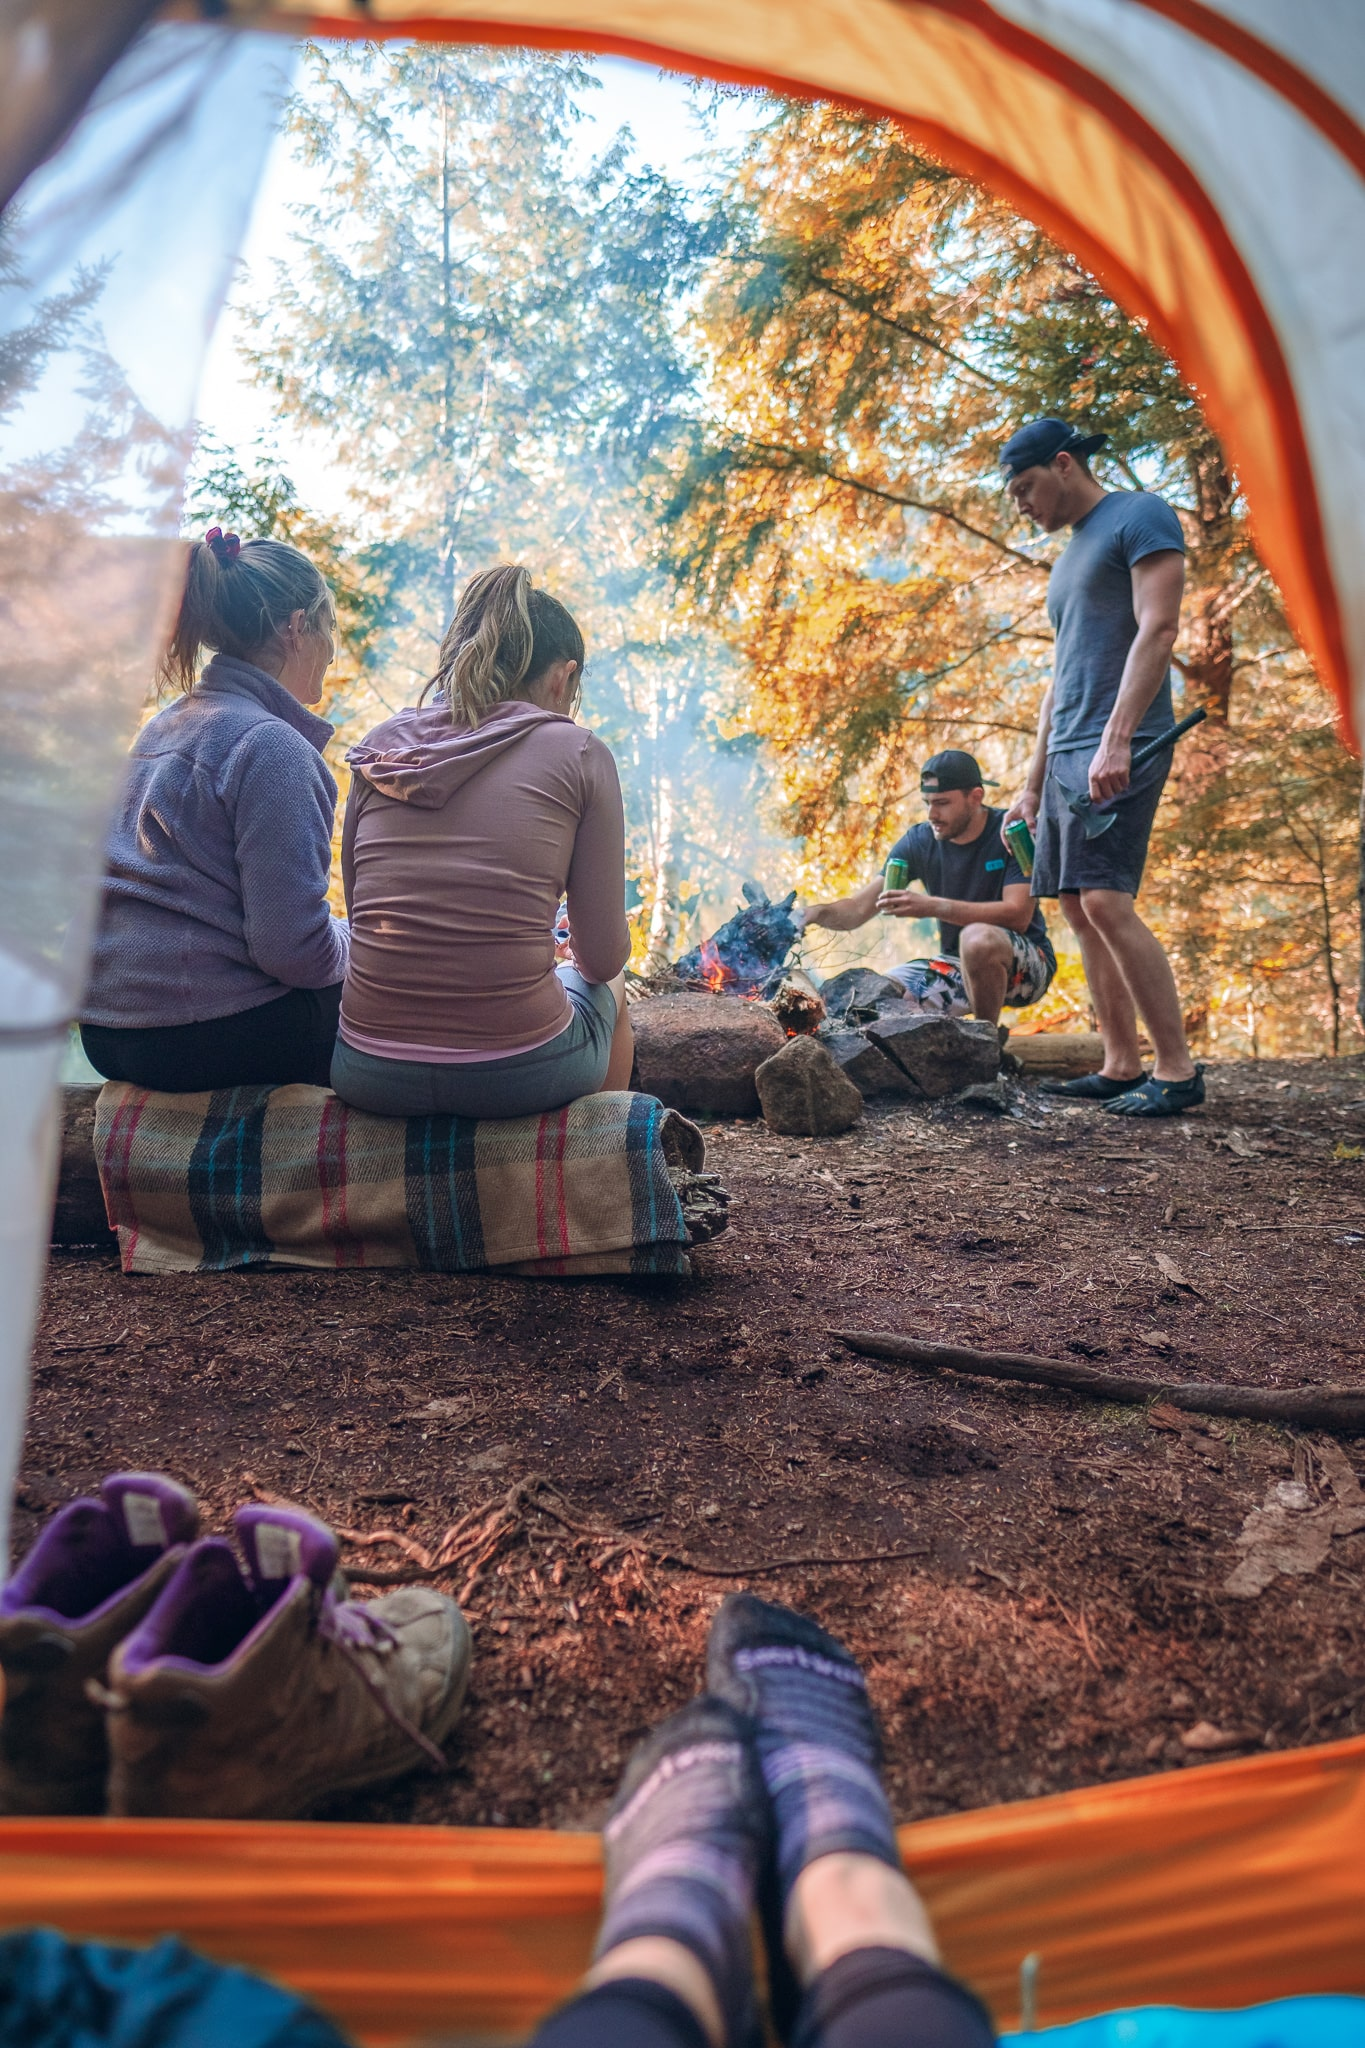 Camping in New York during the fall